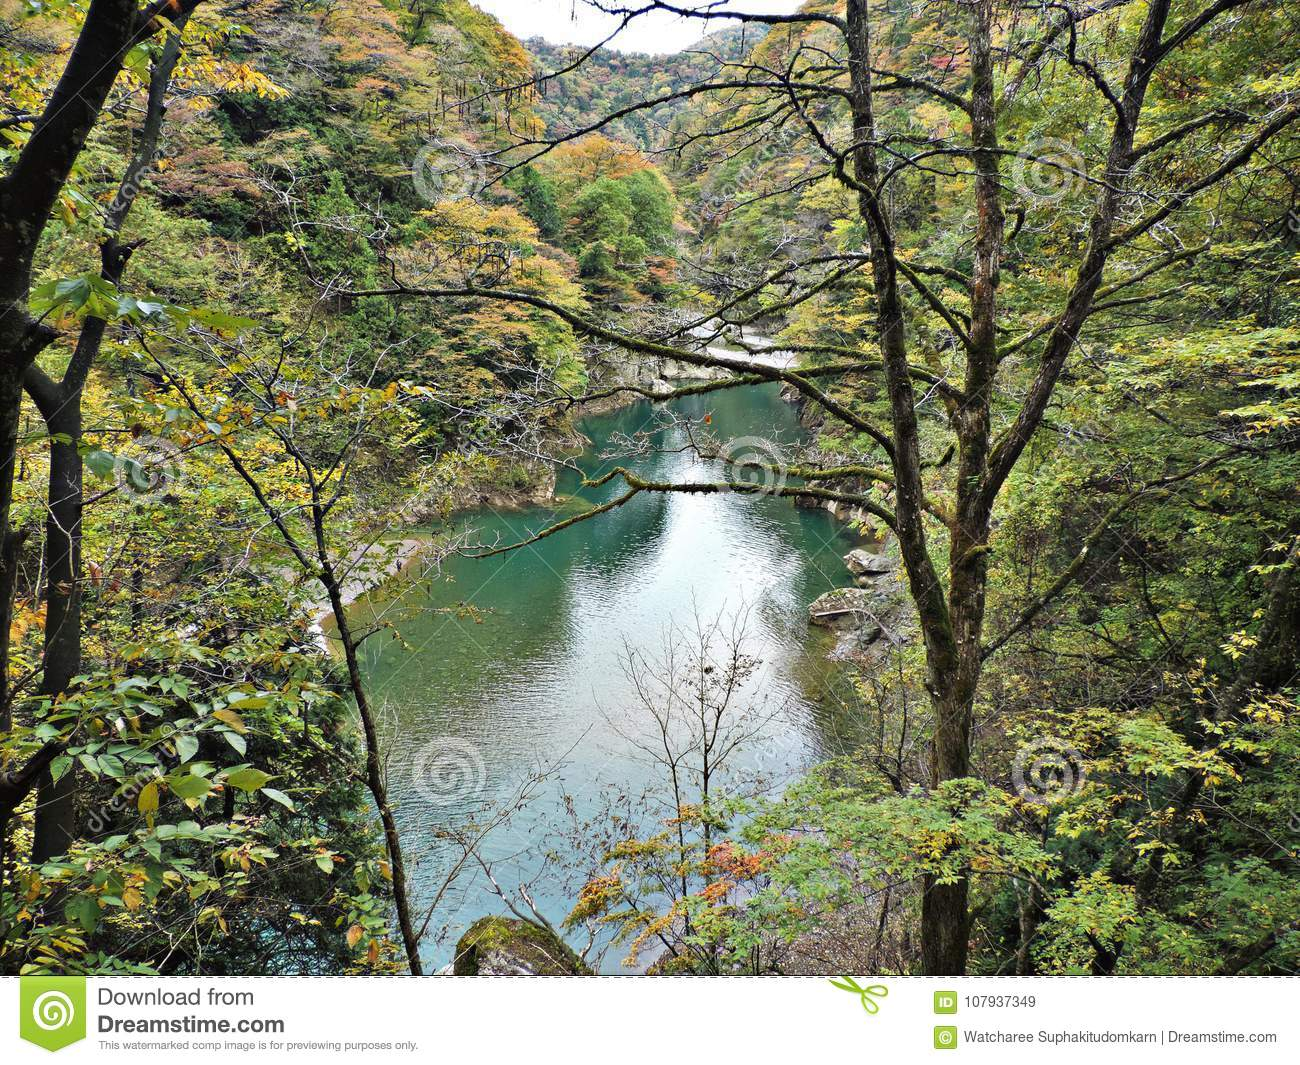 Scenery of leaves color change and turquoise water stream at Dakigaeri Gorge in Japan.